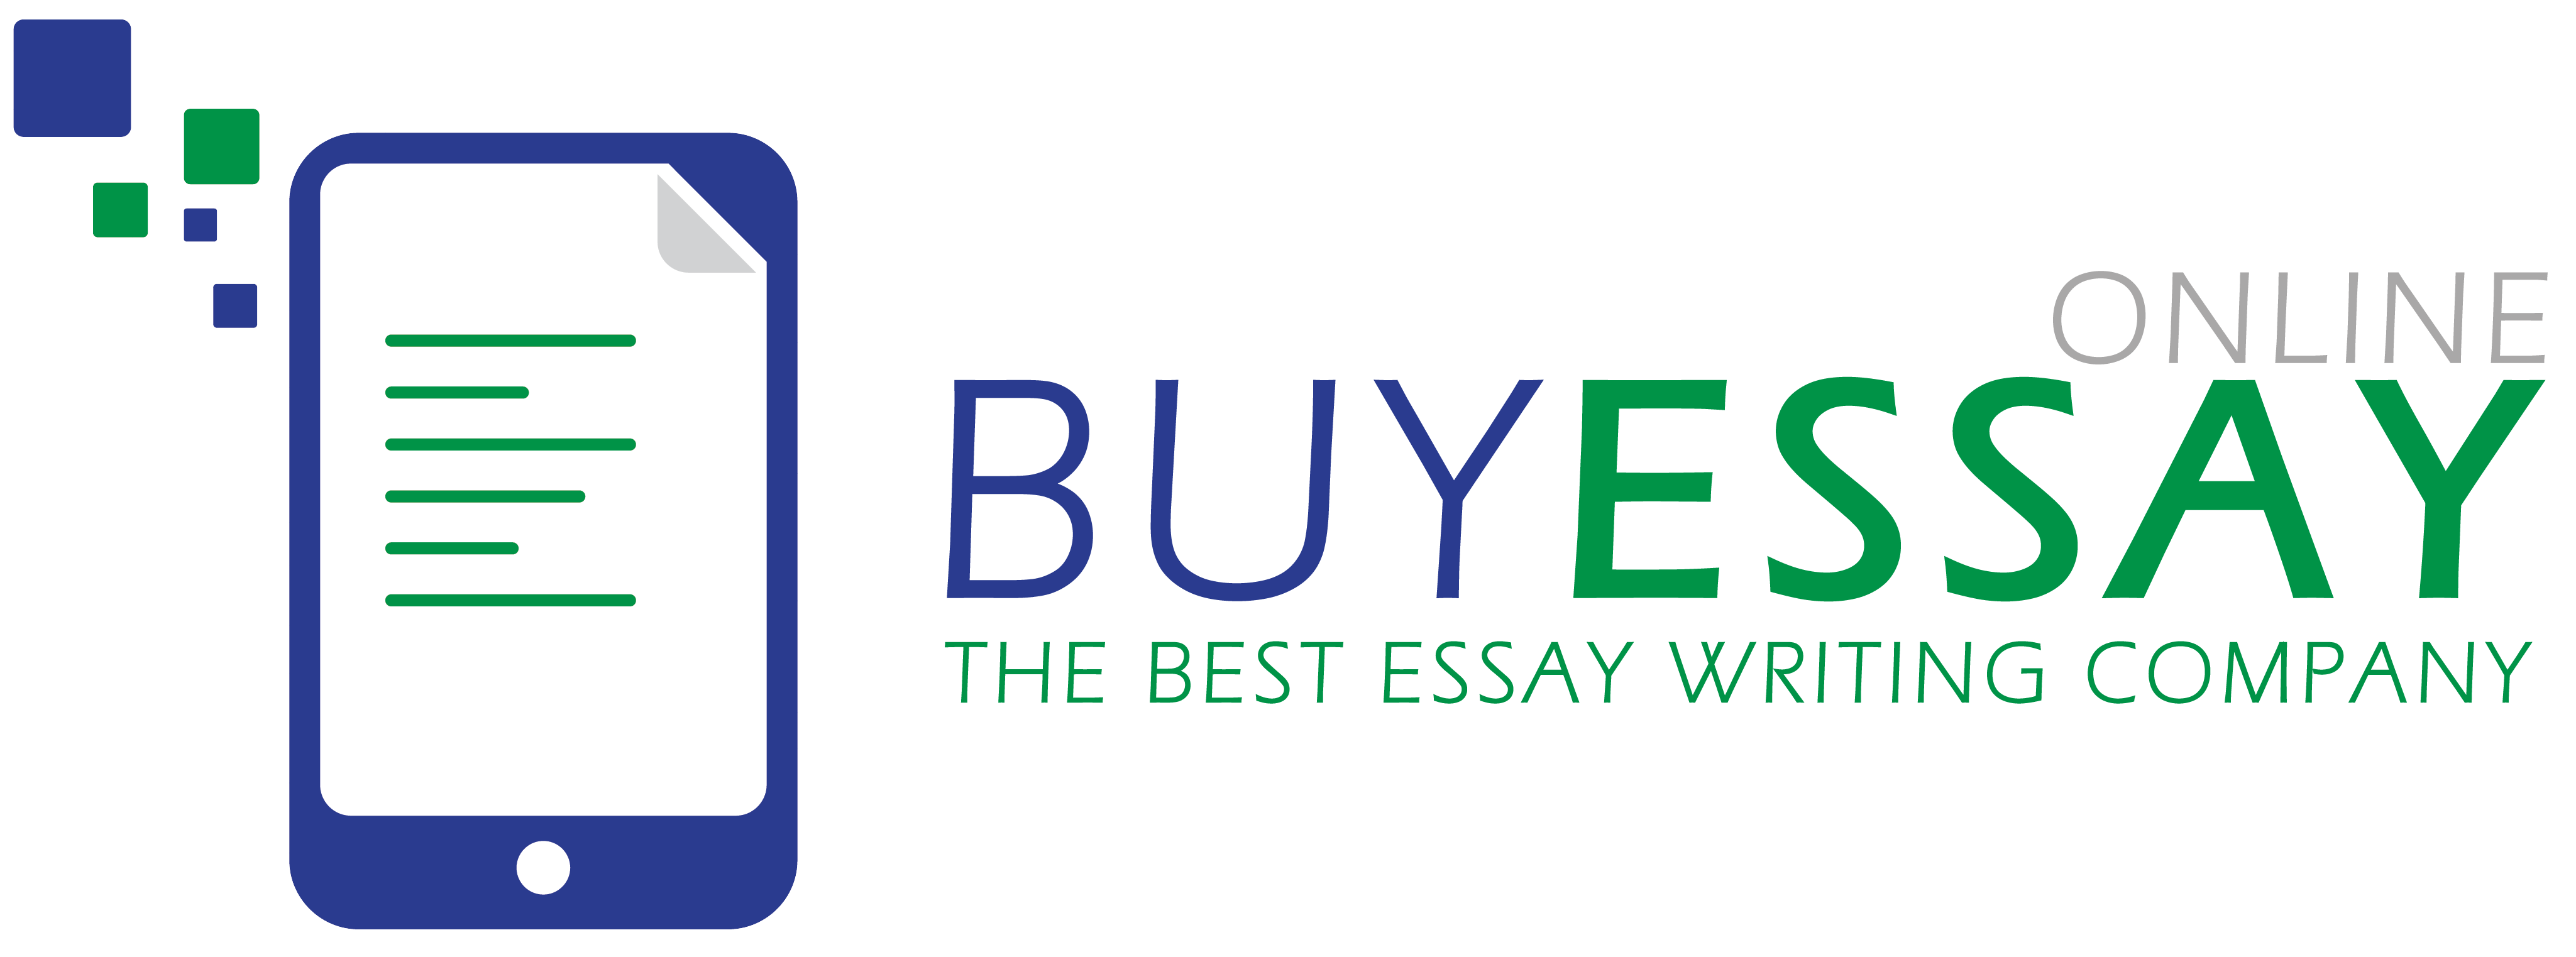 Is buying essays via the web lawful